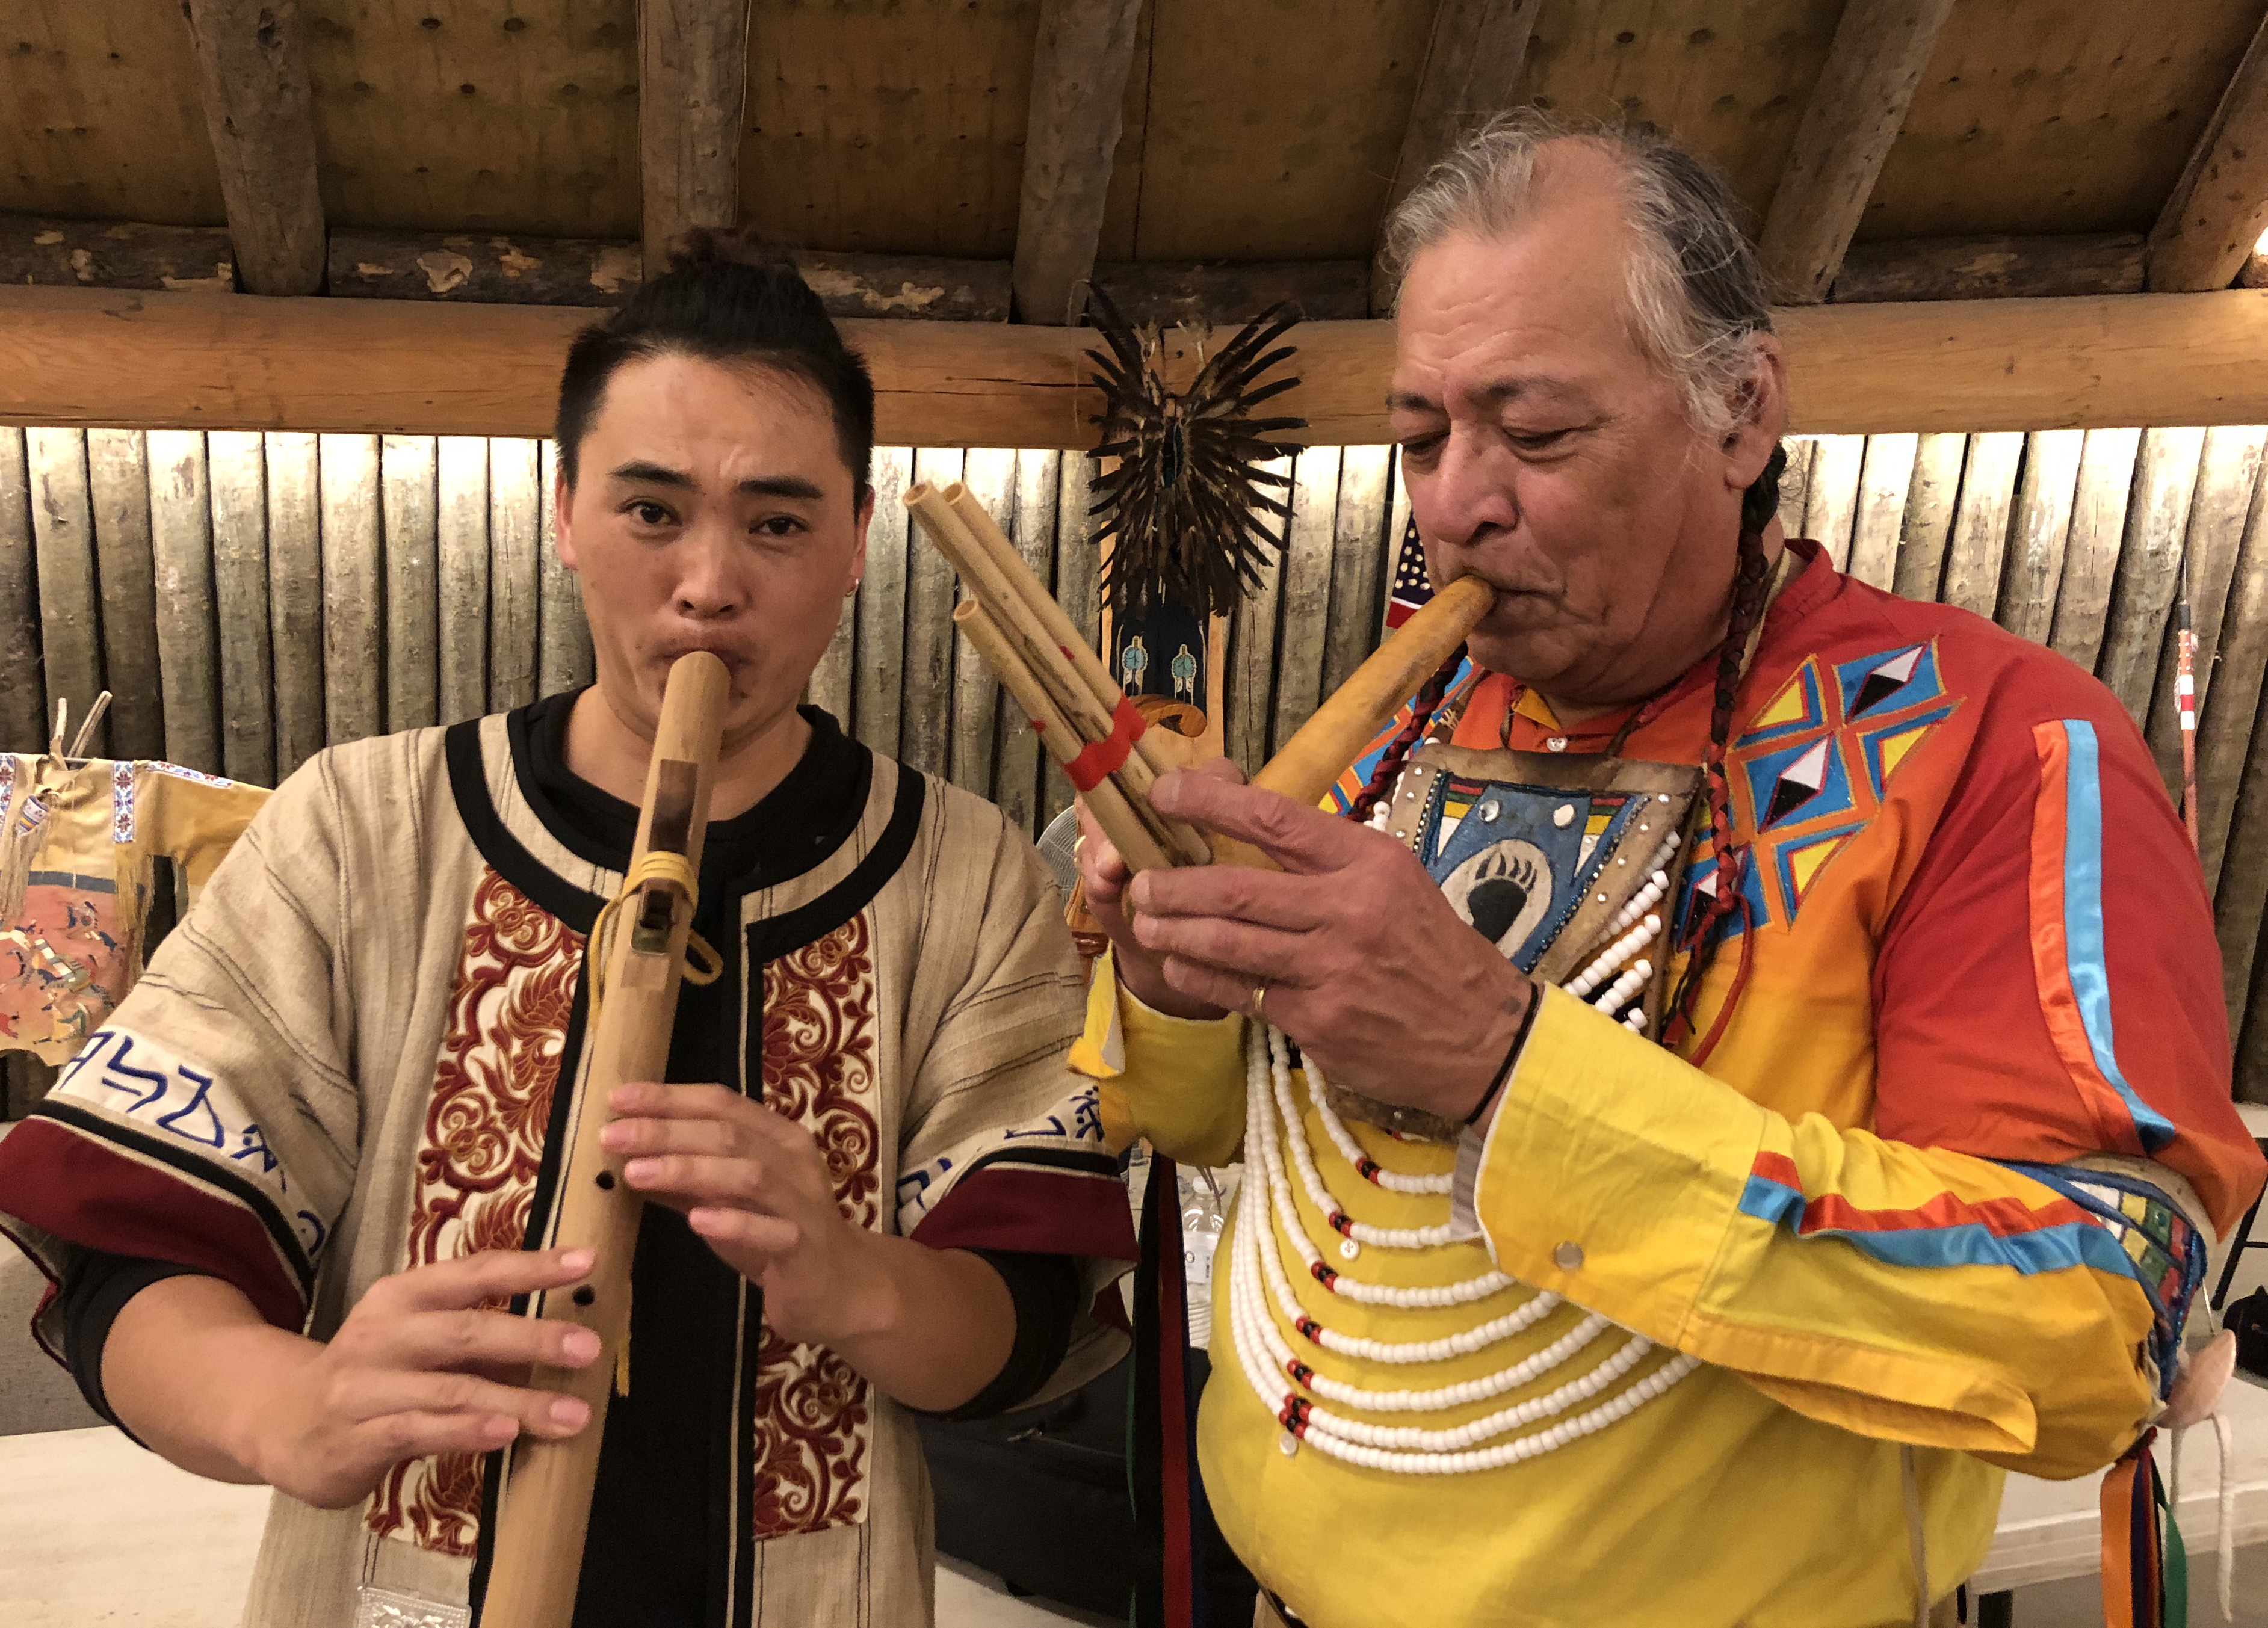 Keith Bear plays hulusi and Wang Tao plays native flute made by Kieth Bear. Keith gifted his hand made flute to Wang Tao.